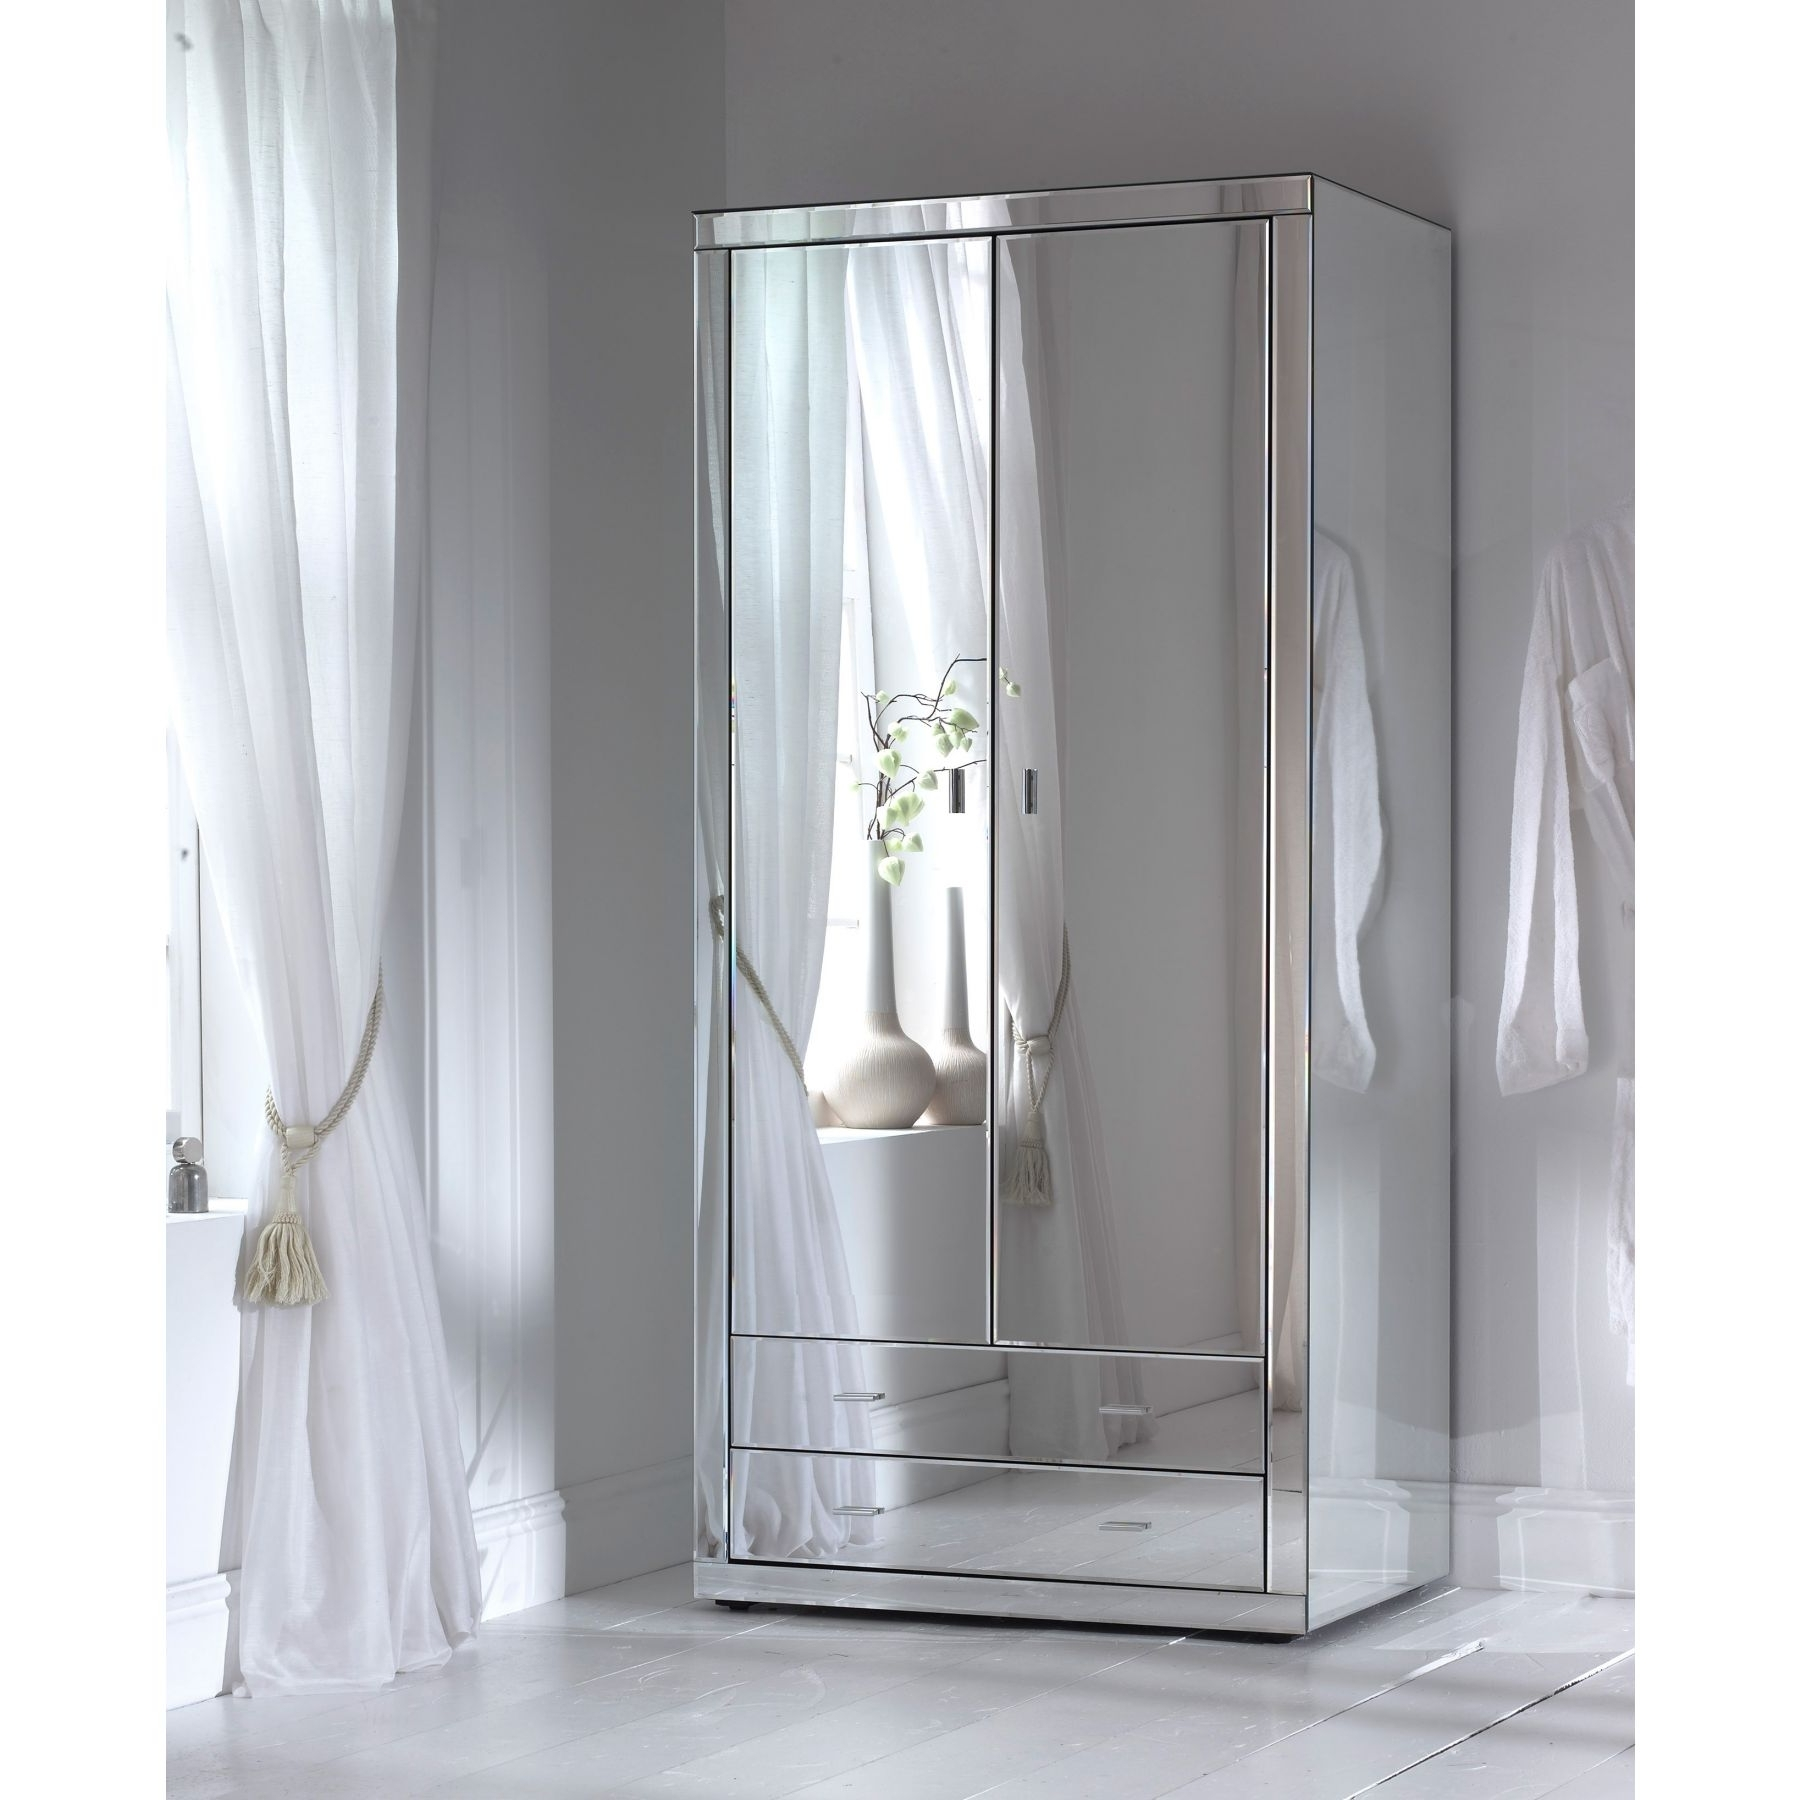 Mirrored Wardrobes With Drawers In 2017 White Wardrobe With Mirror Ebay 3 Door And Drawers Gloss You Will (View 8 of 15)